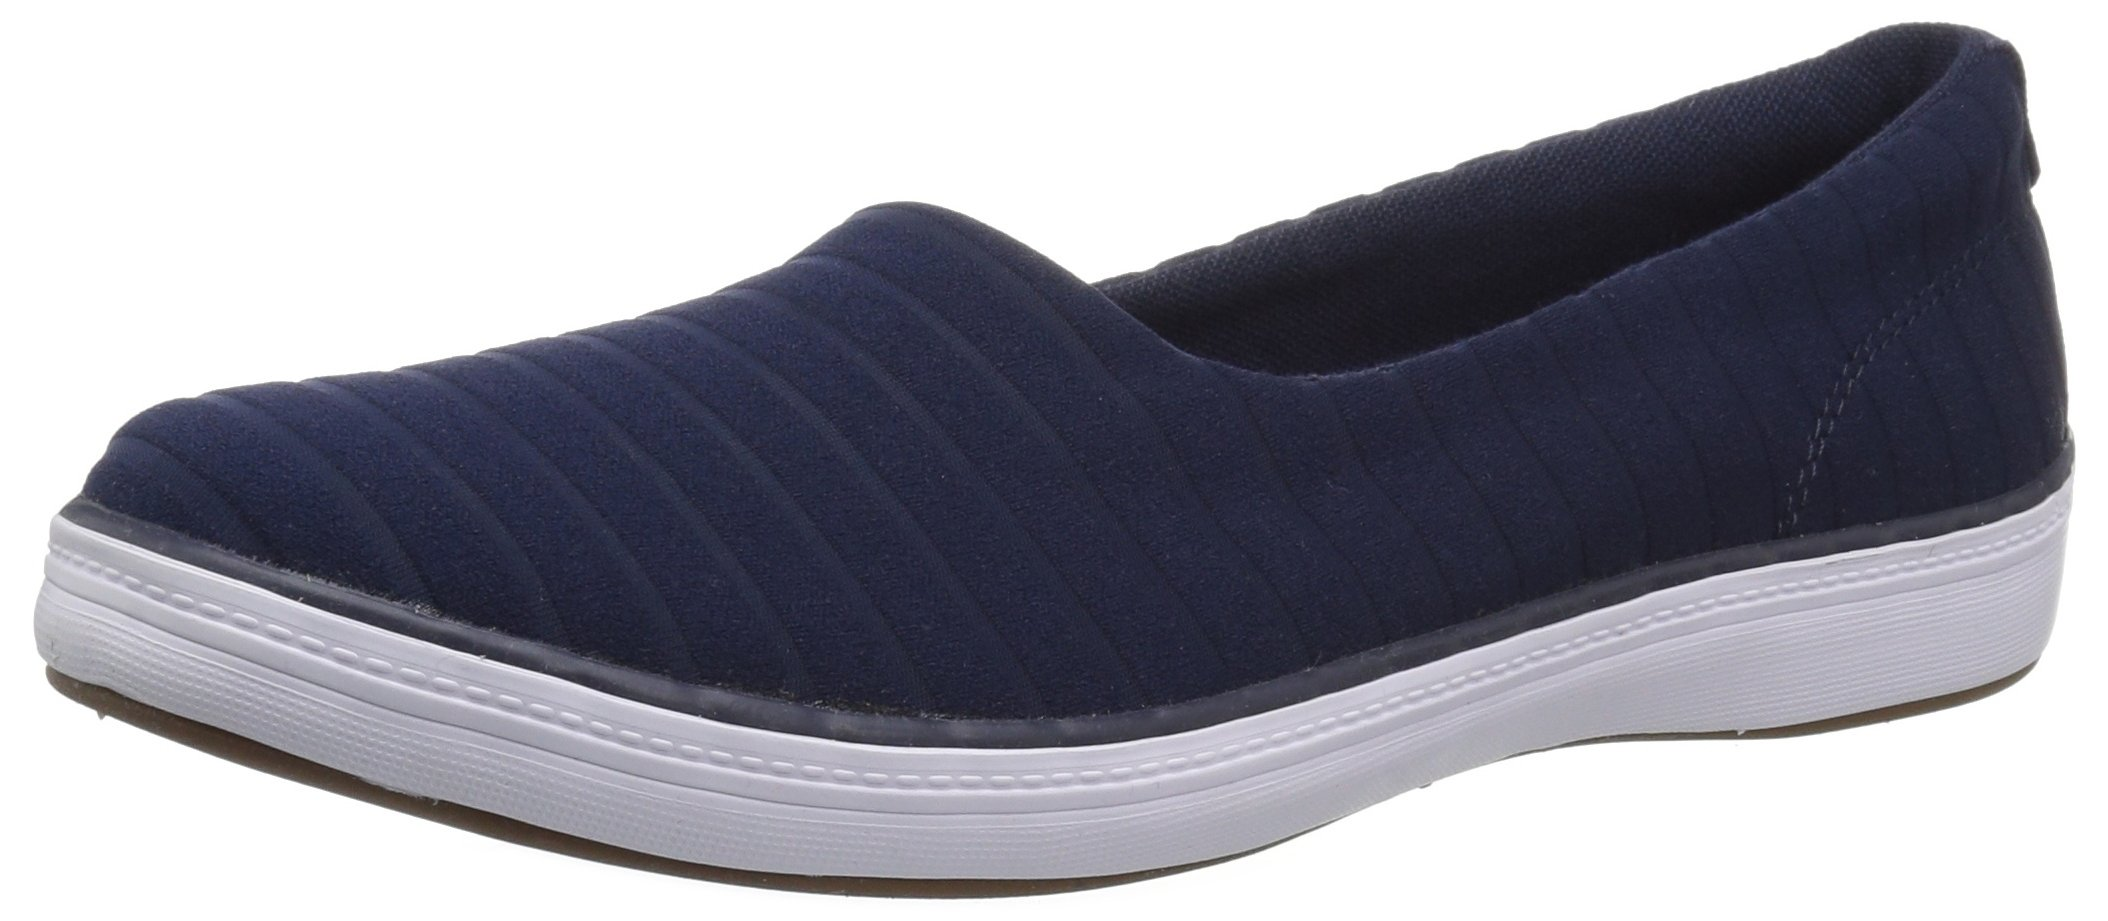 Grasshoppers Women's Lacuna Stretch Stripe Sneaker, Peacoat Navy, 8 M US